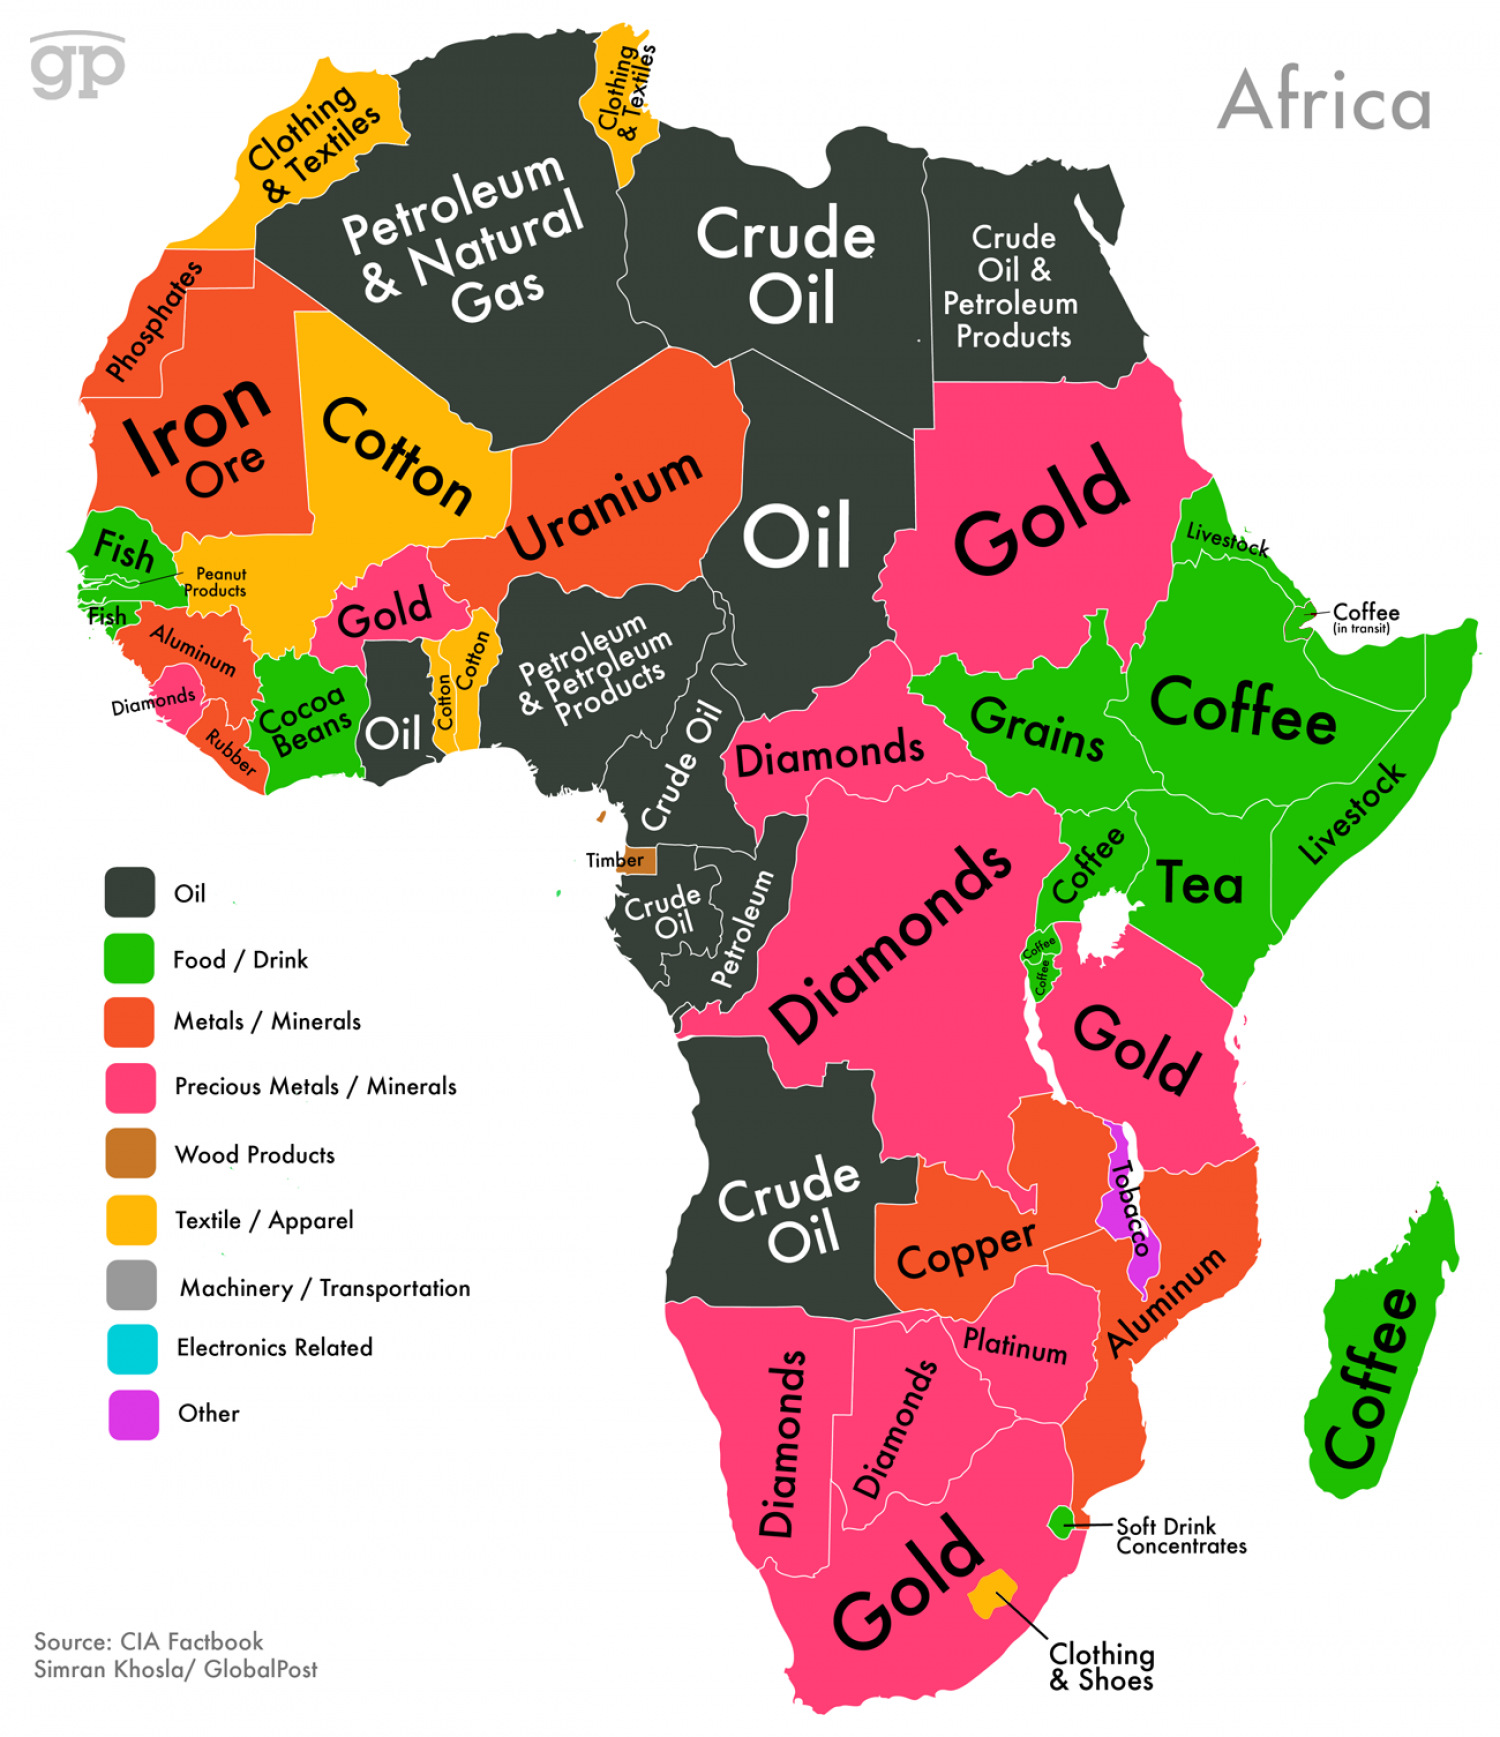 World Commodities Map: Africa Infographic